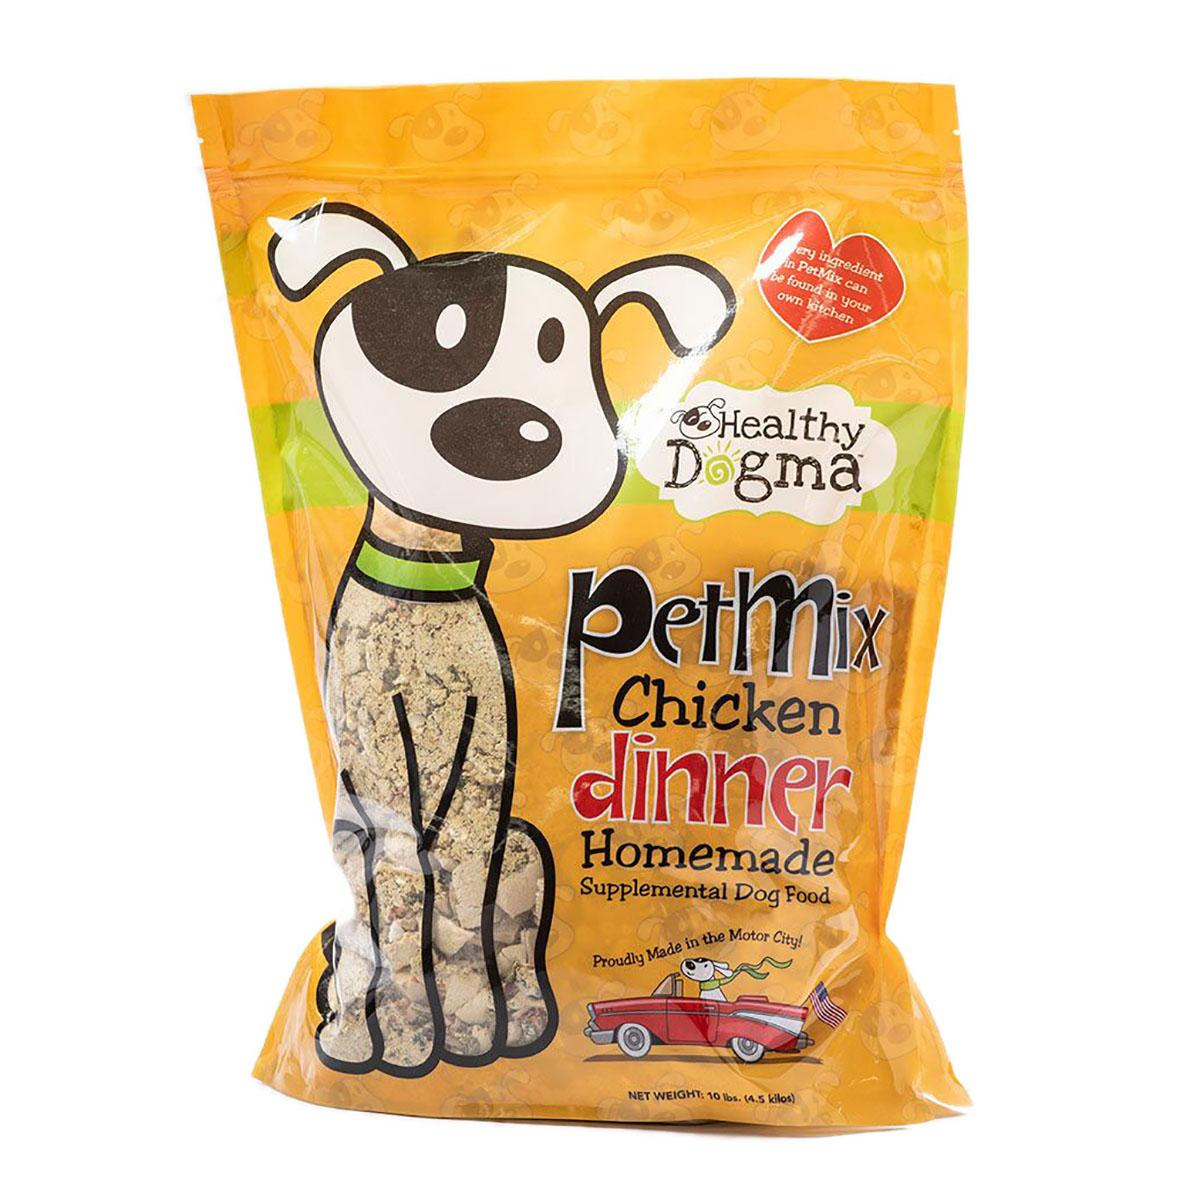 Healthy Dogma PetMix Chicken Dinner Clean Recipe Dog Food